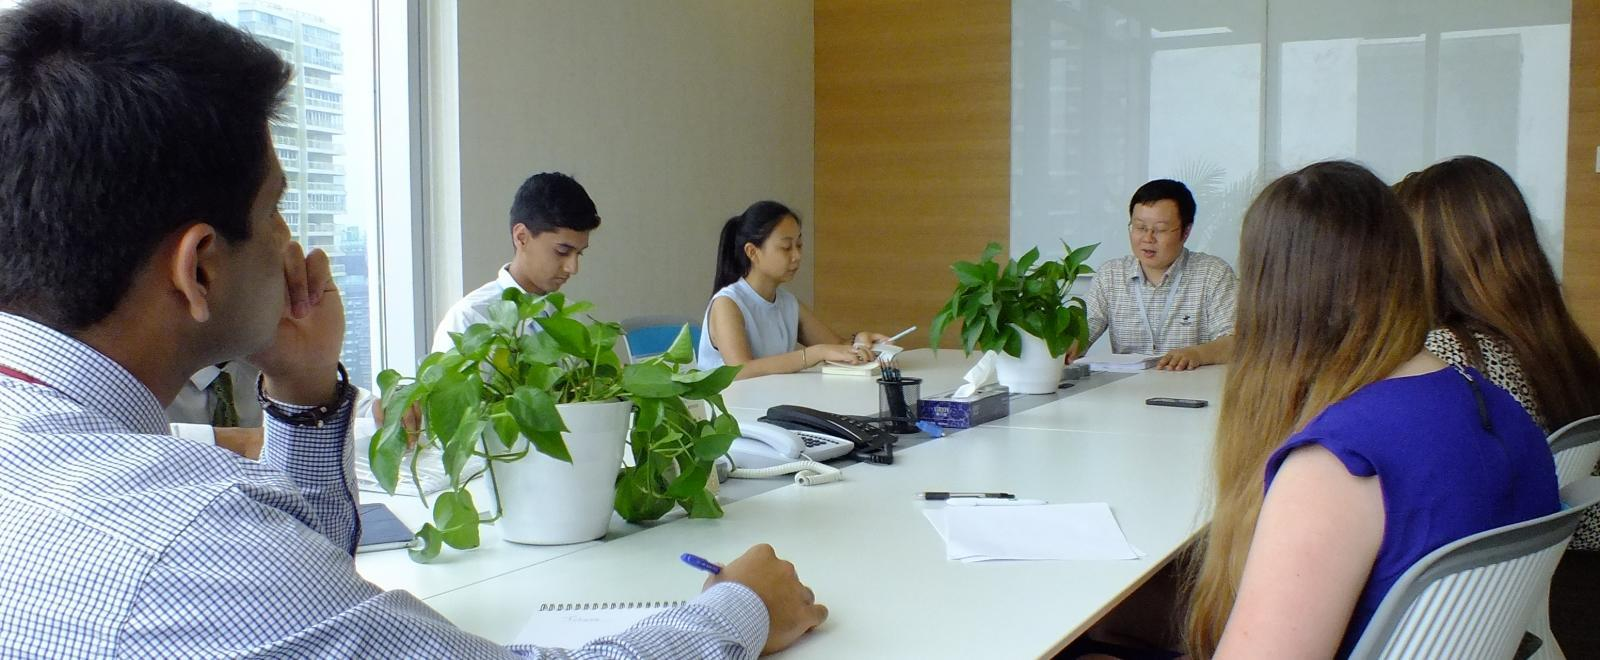 Students doing internships in Asia participate in a meeting with business professionals in China.